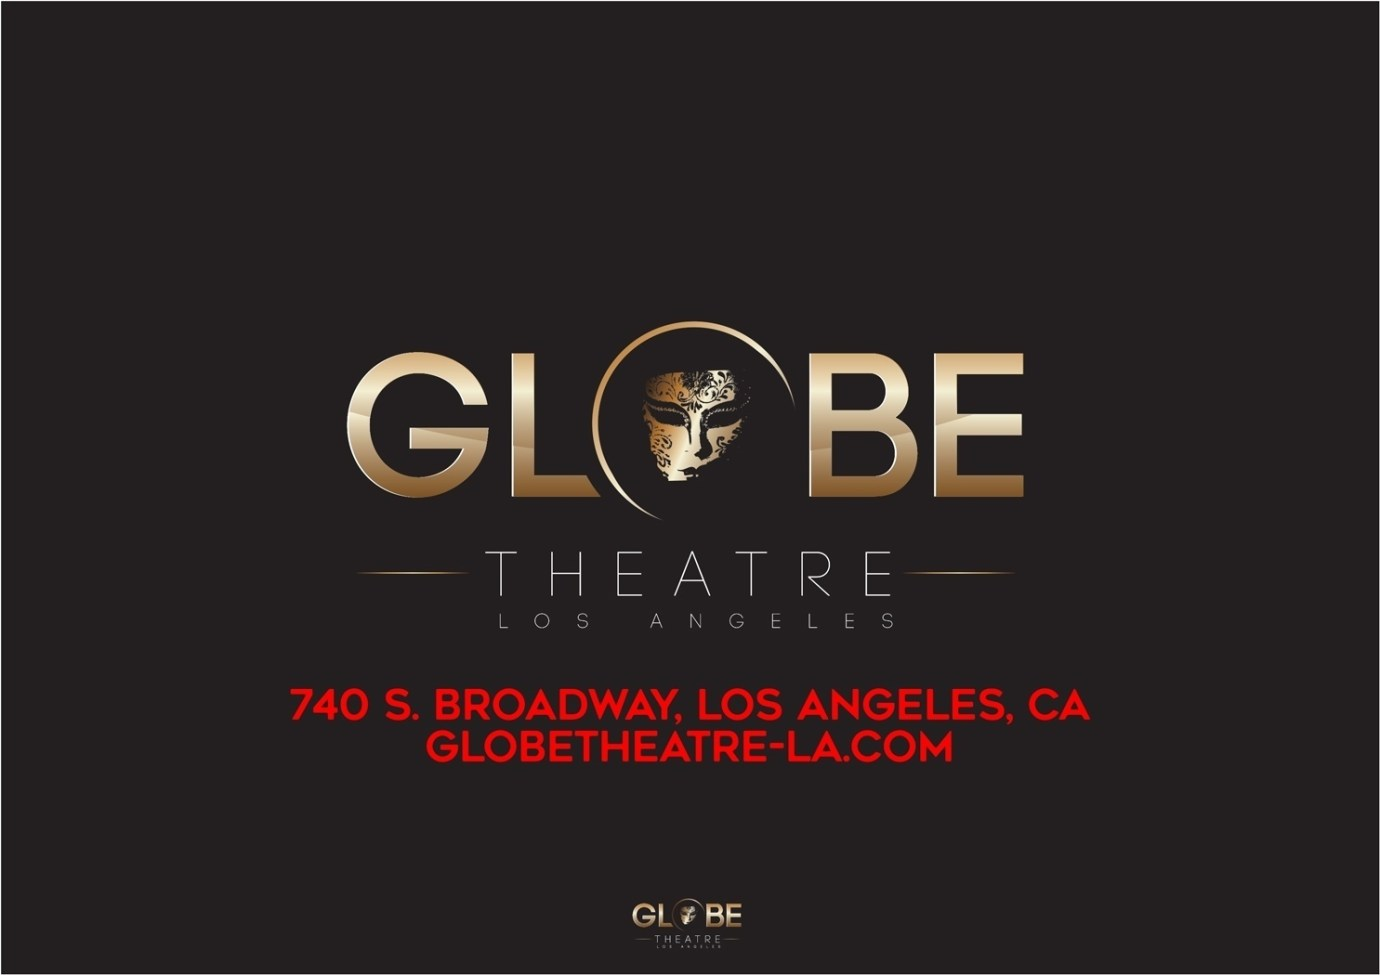 Globe Theatre - Los Angeles